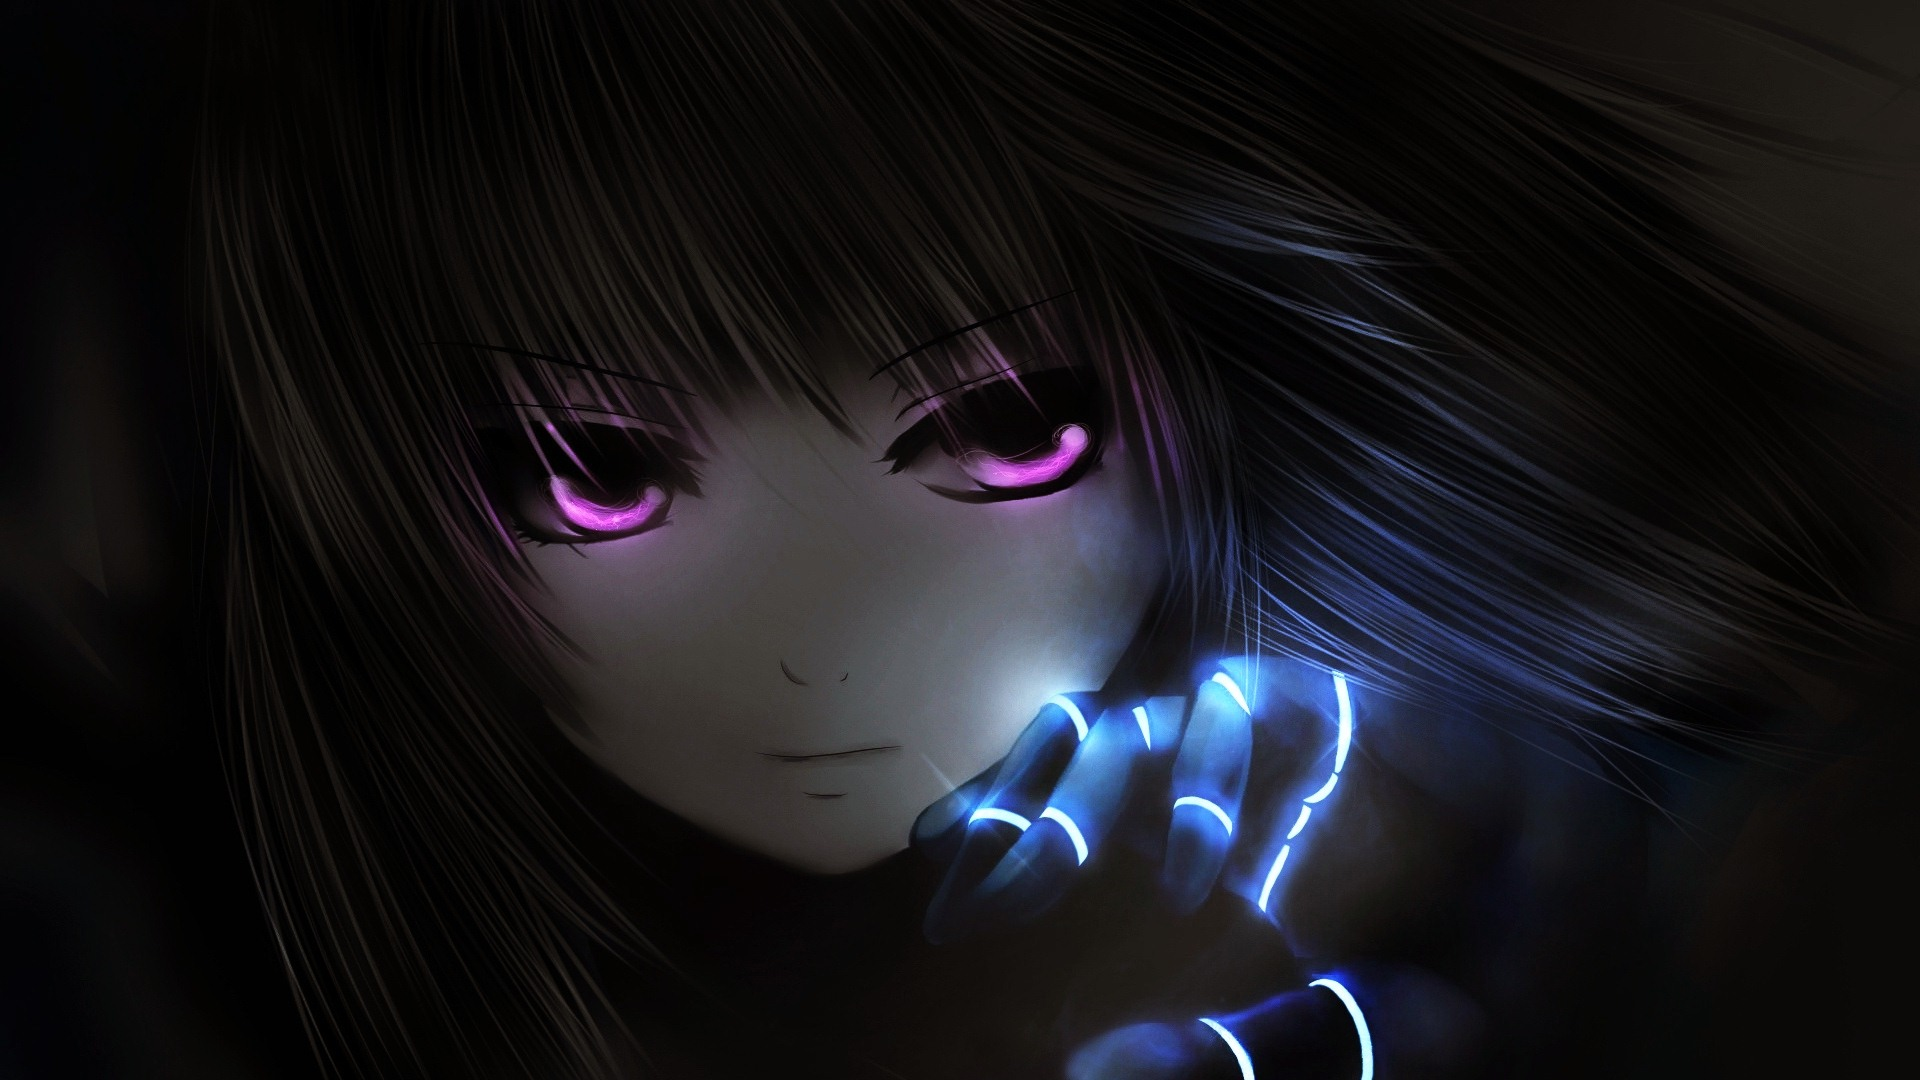 Dark Anime Wallpaper Widescreen : Anime Wallpaper - Arunnath com